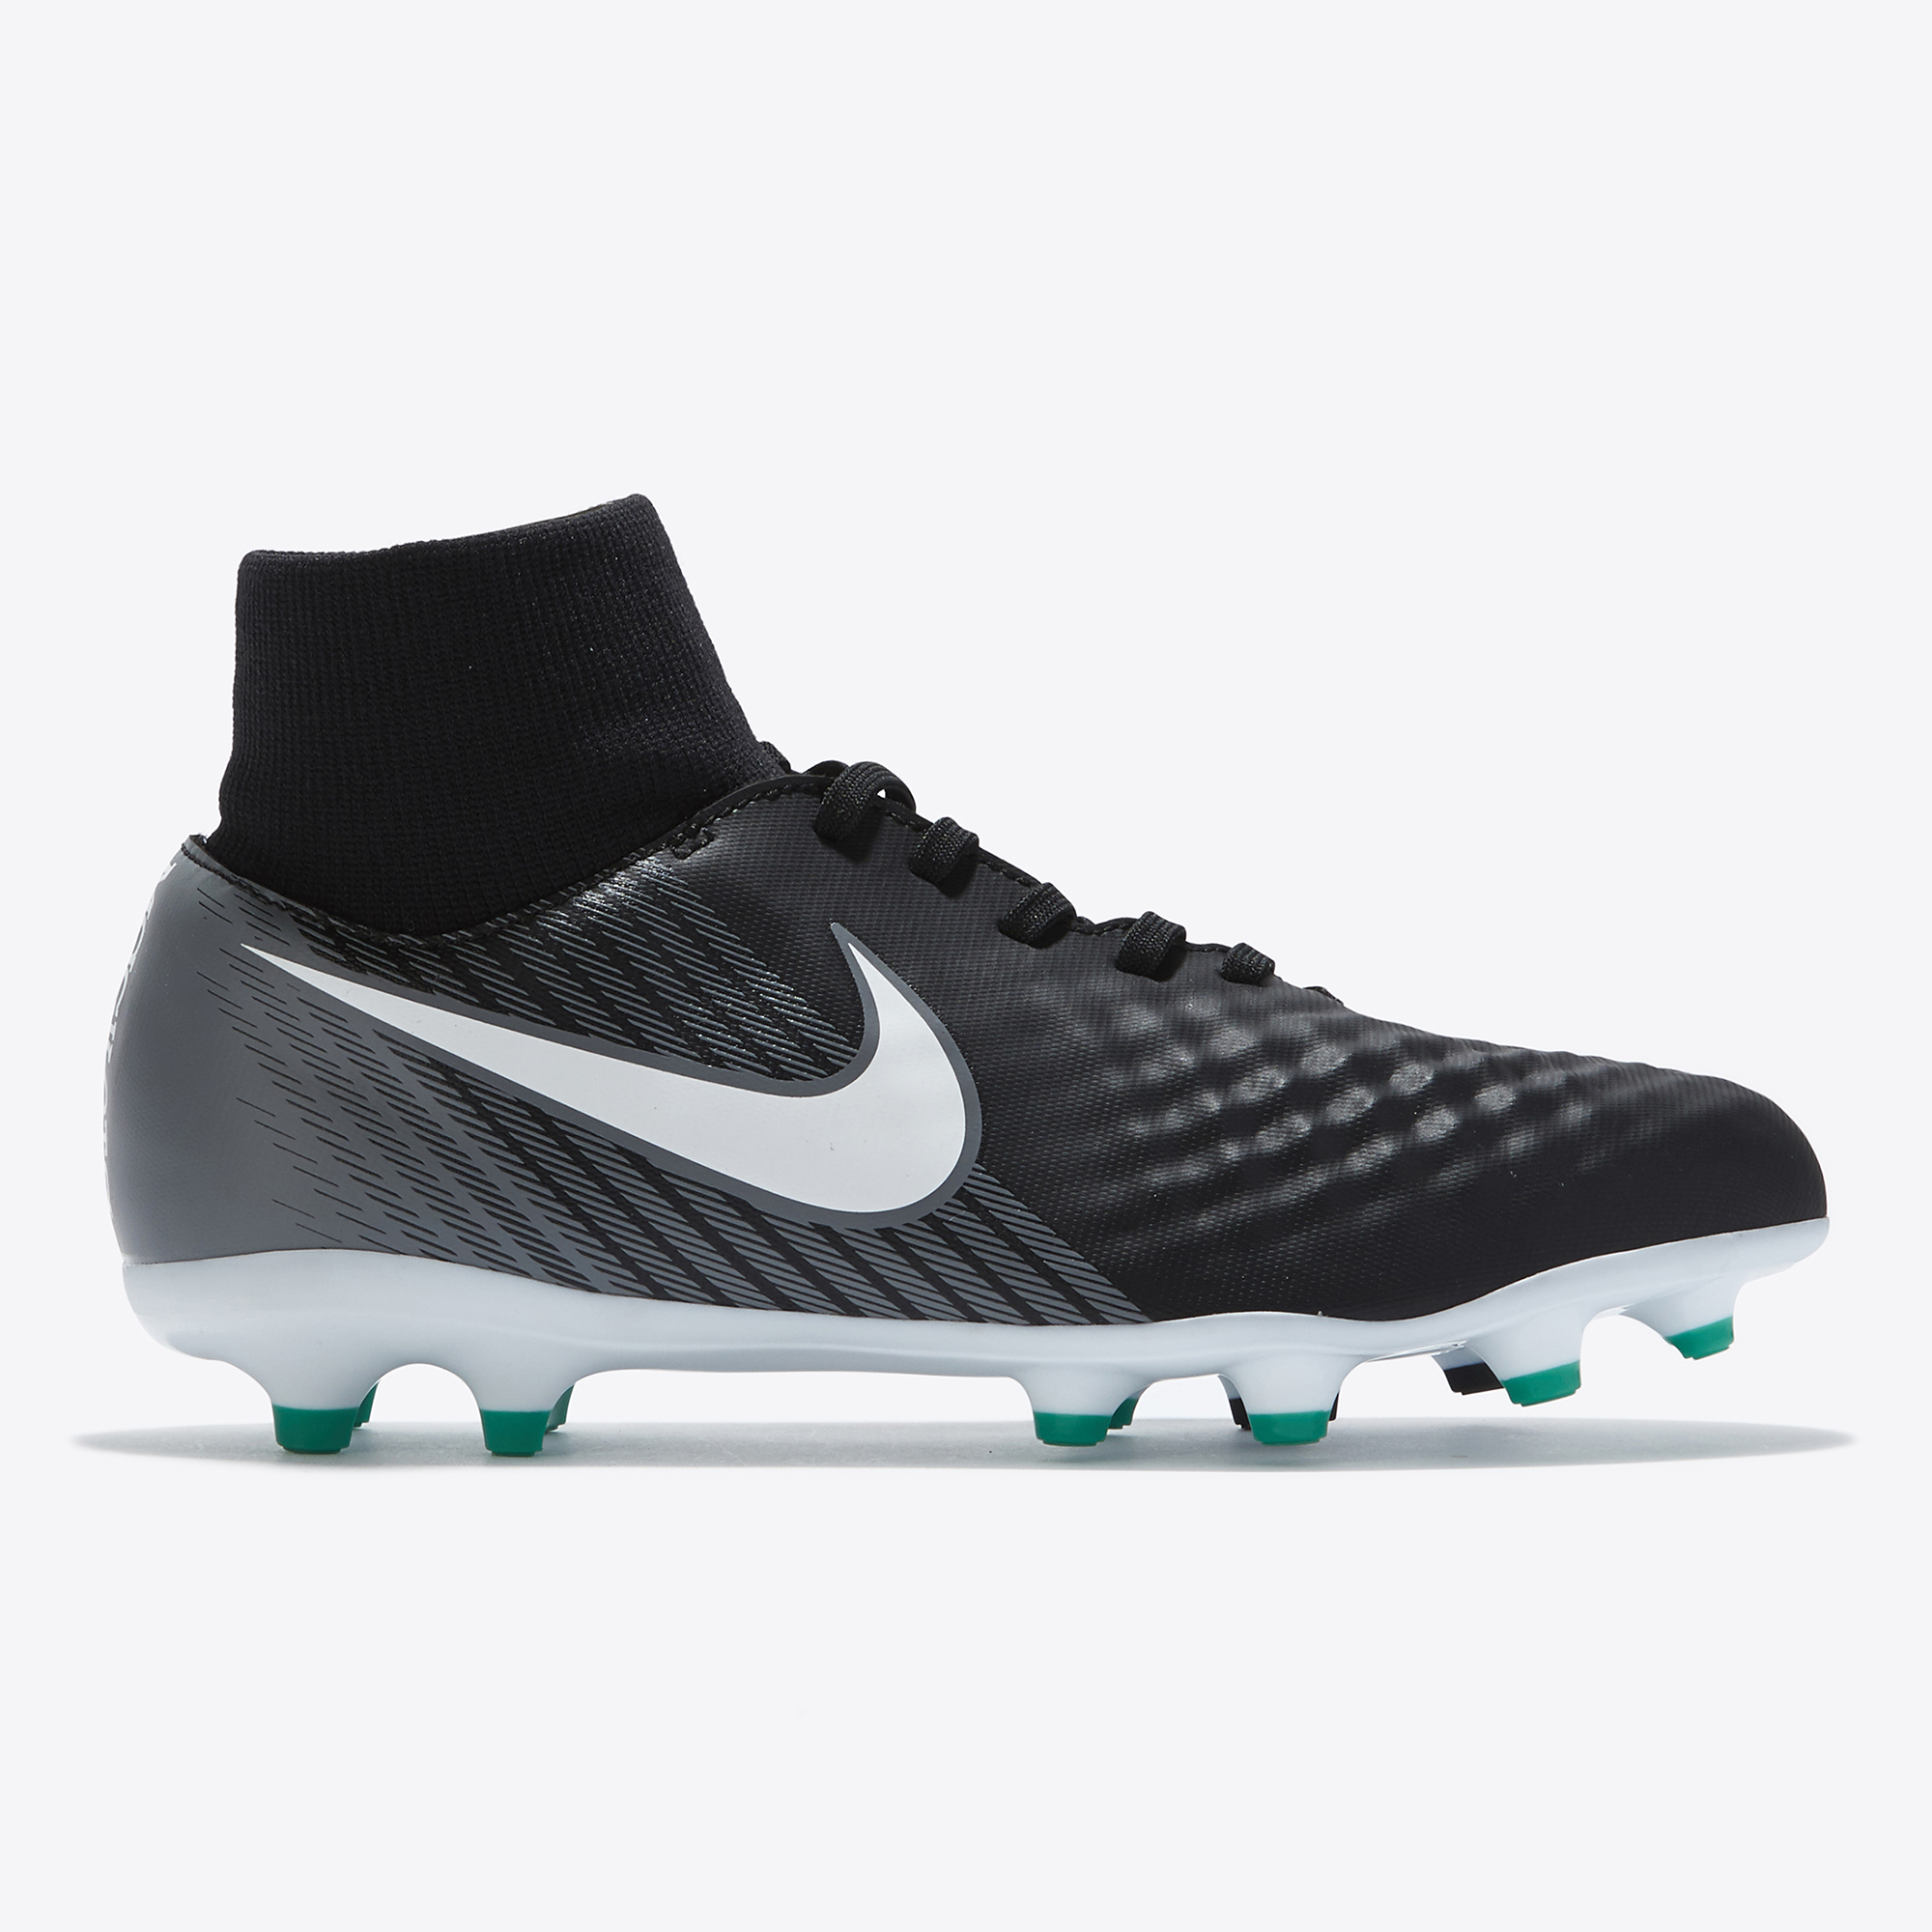 Nike Magista Onda II Dynamic Fit Firm Ground Football Boots - Black/Wh